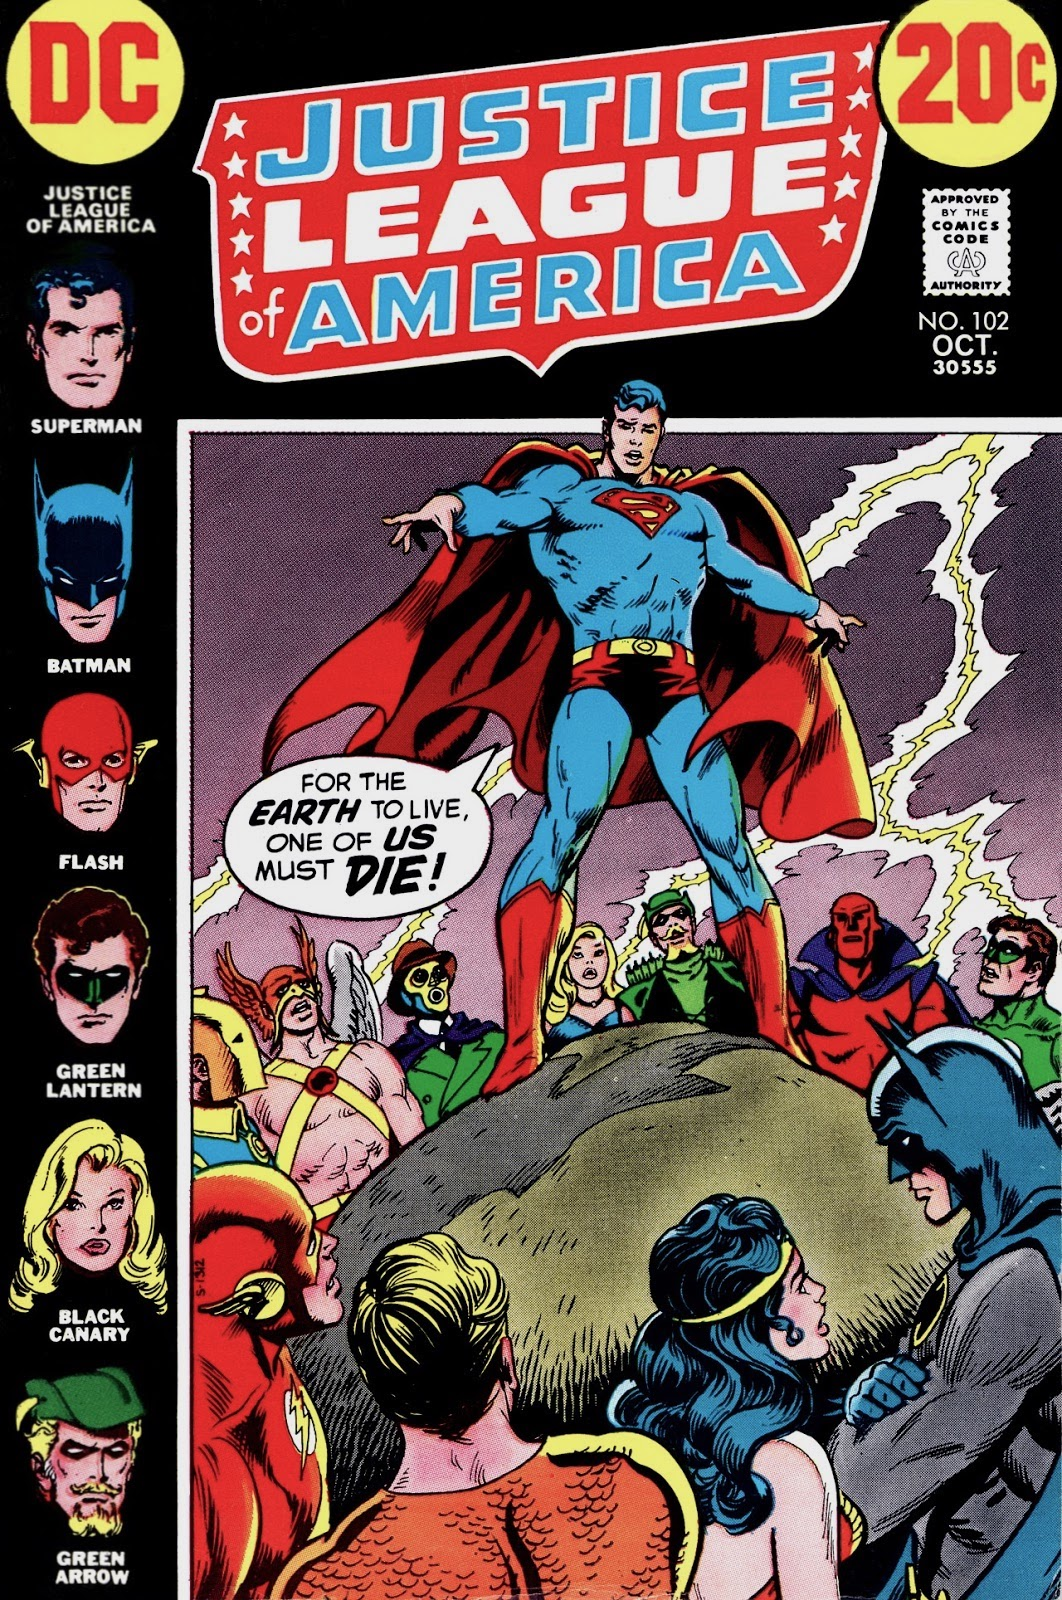 Superman amidst members of the Justice League and Justice Society, proclaiming 'For the Earth to live one of us must die!'